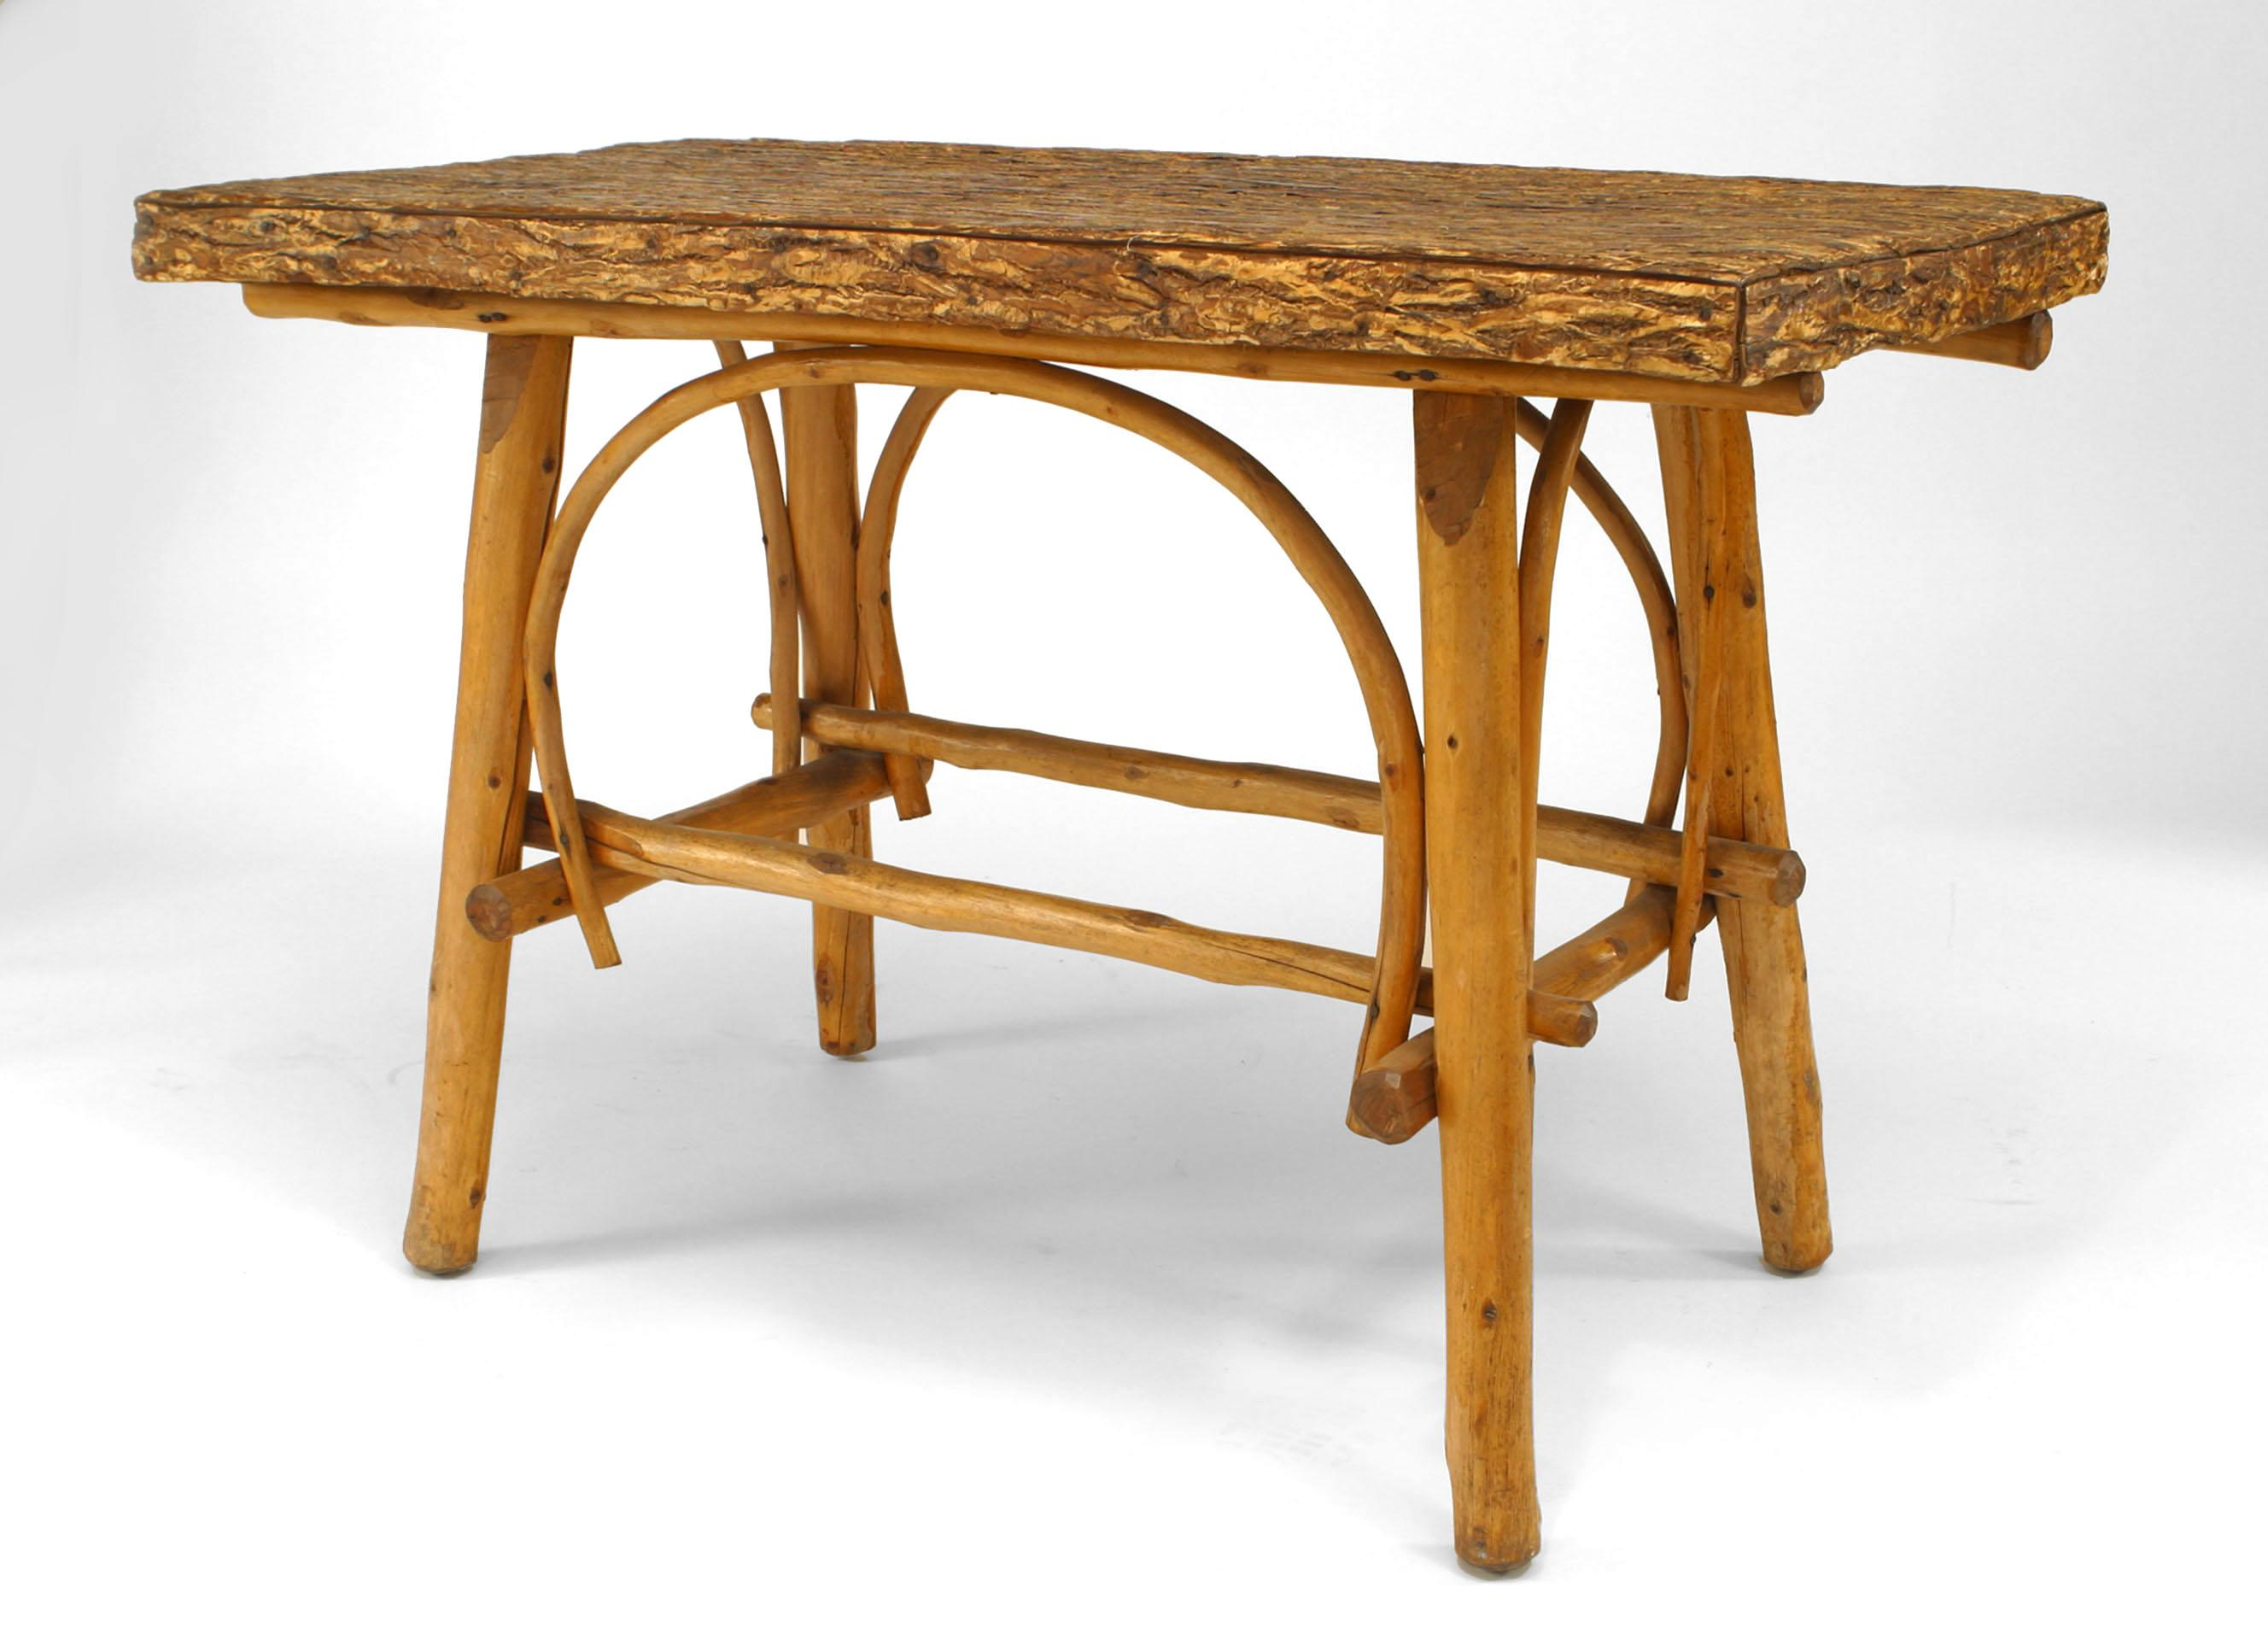 Turn Of The Century American Adirondack Style Barked Center Table For At 1stdibs